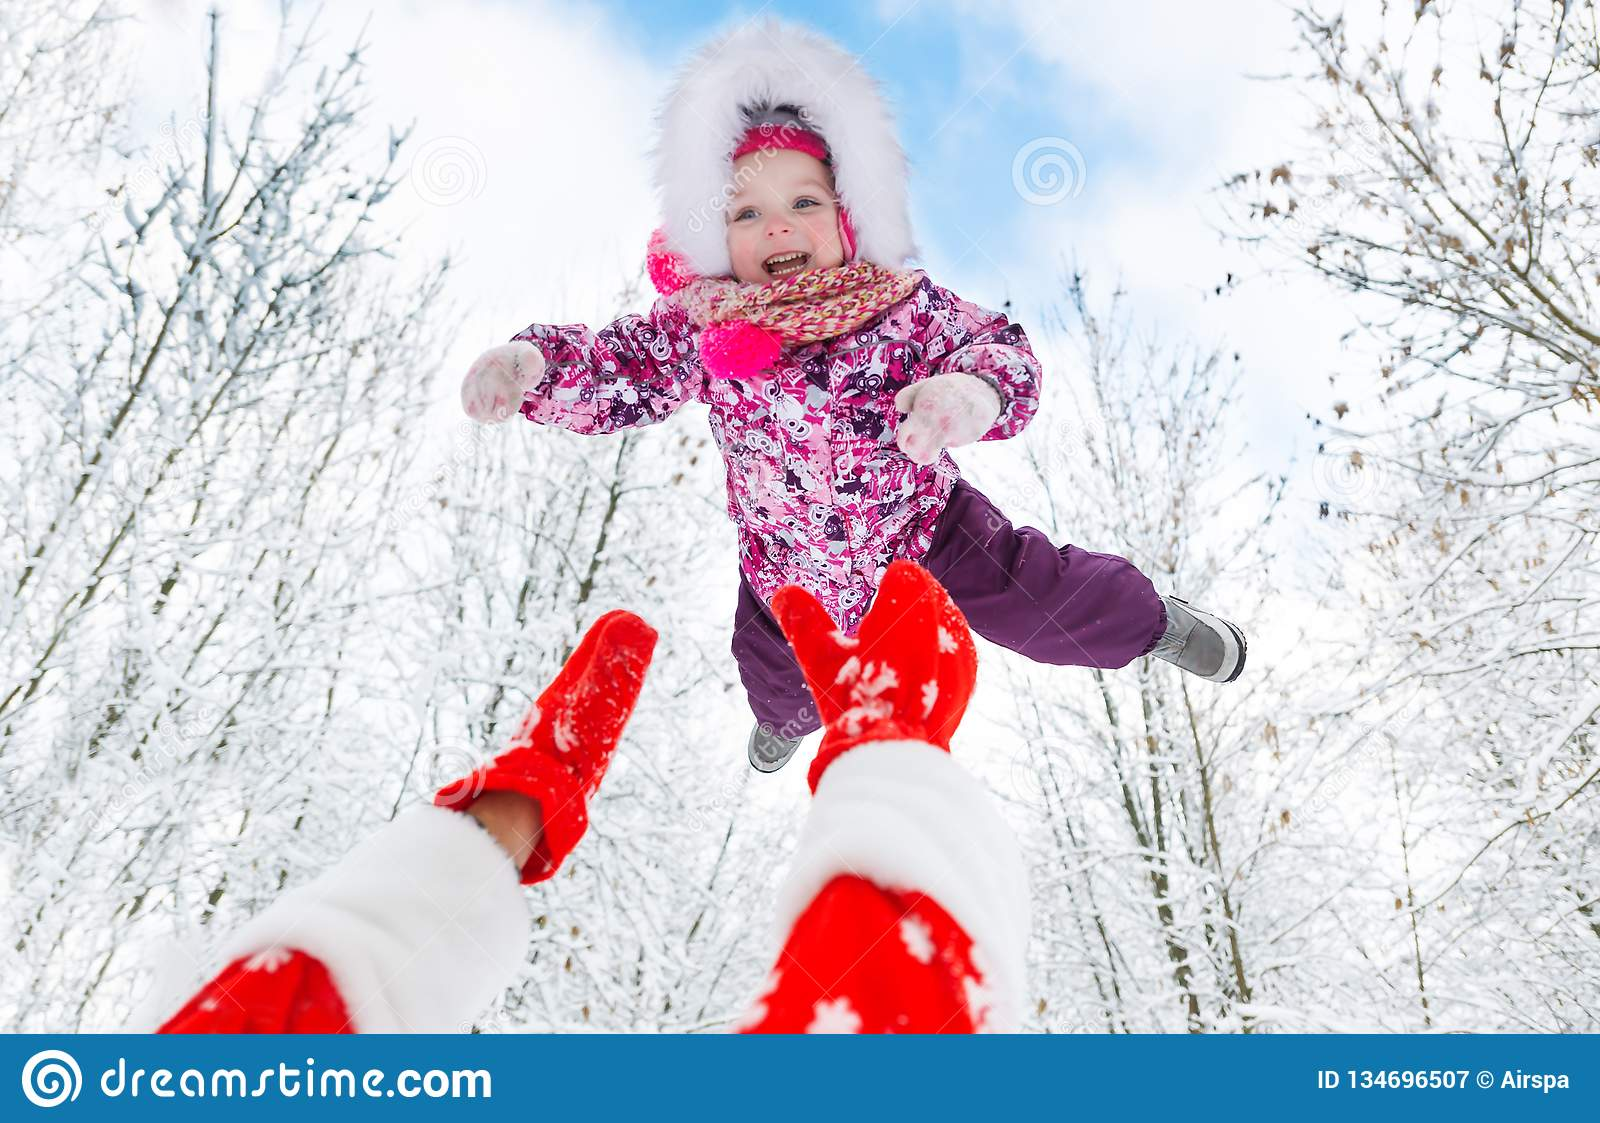 Santa Claus throws up overhead cute little girl in winter forest on Christmas